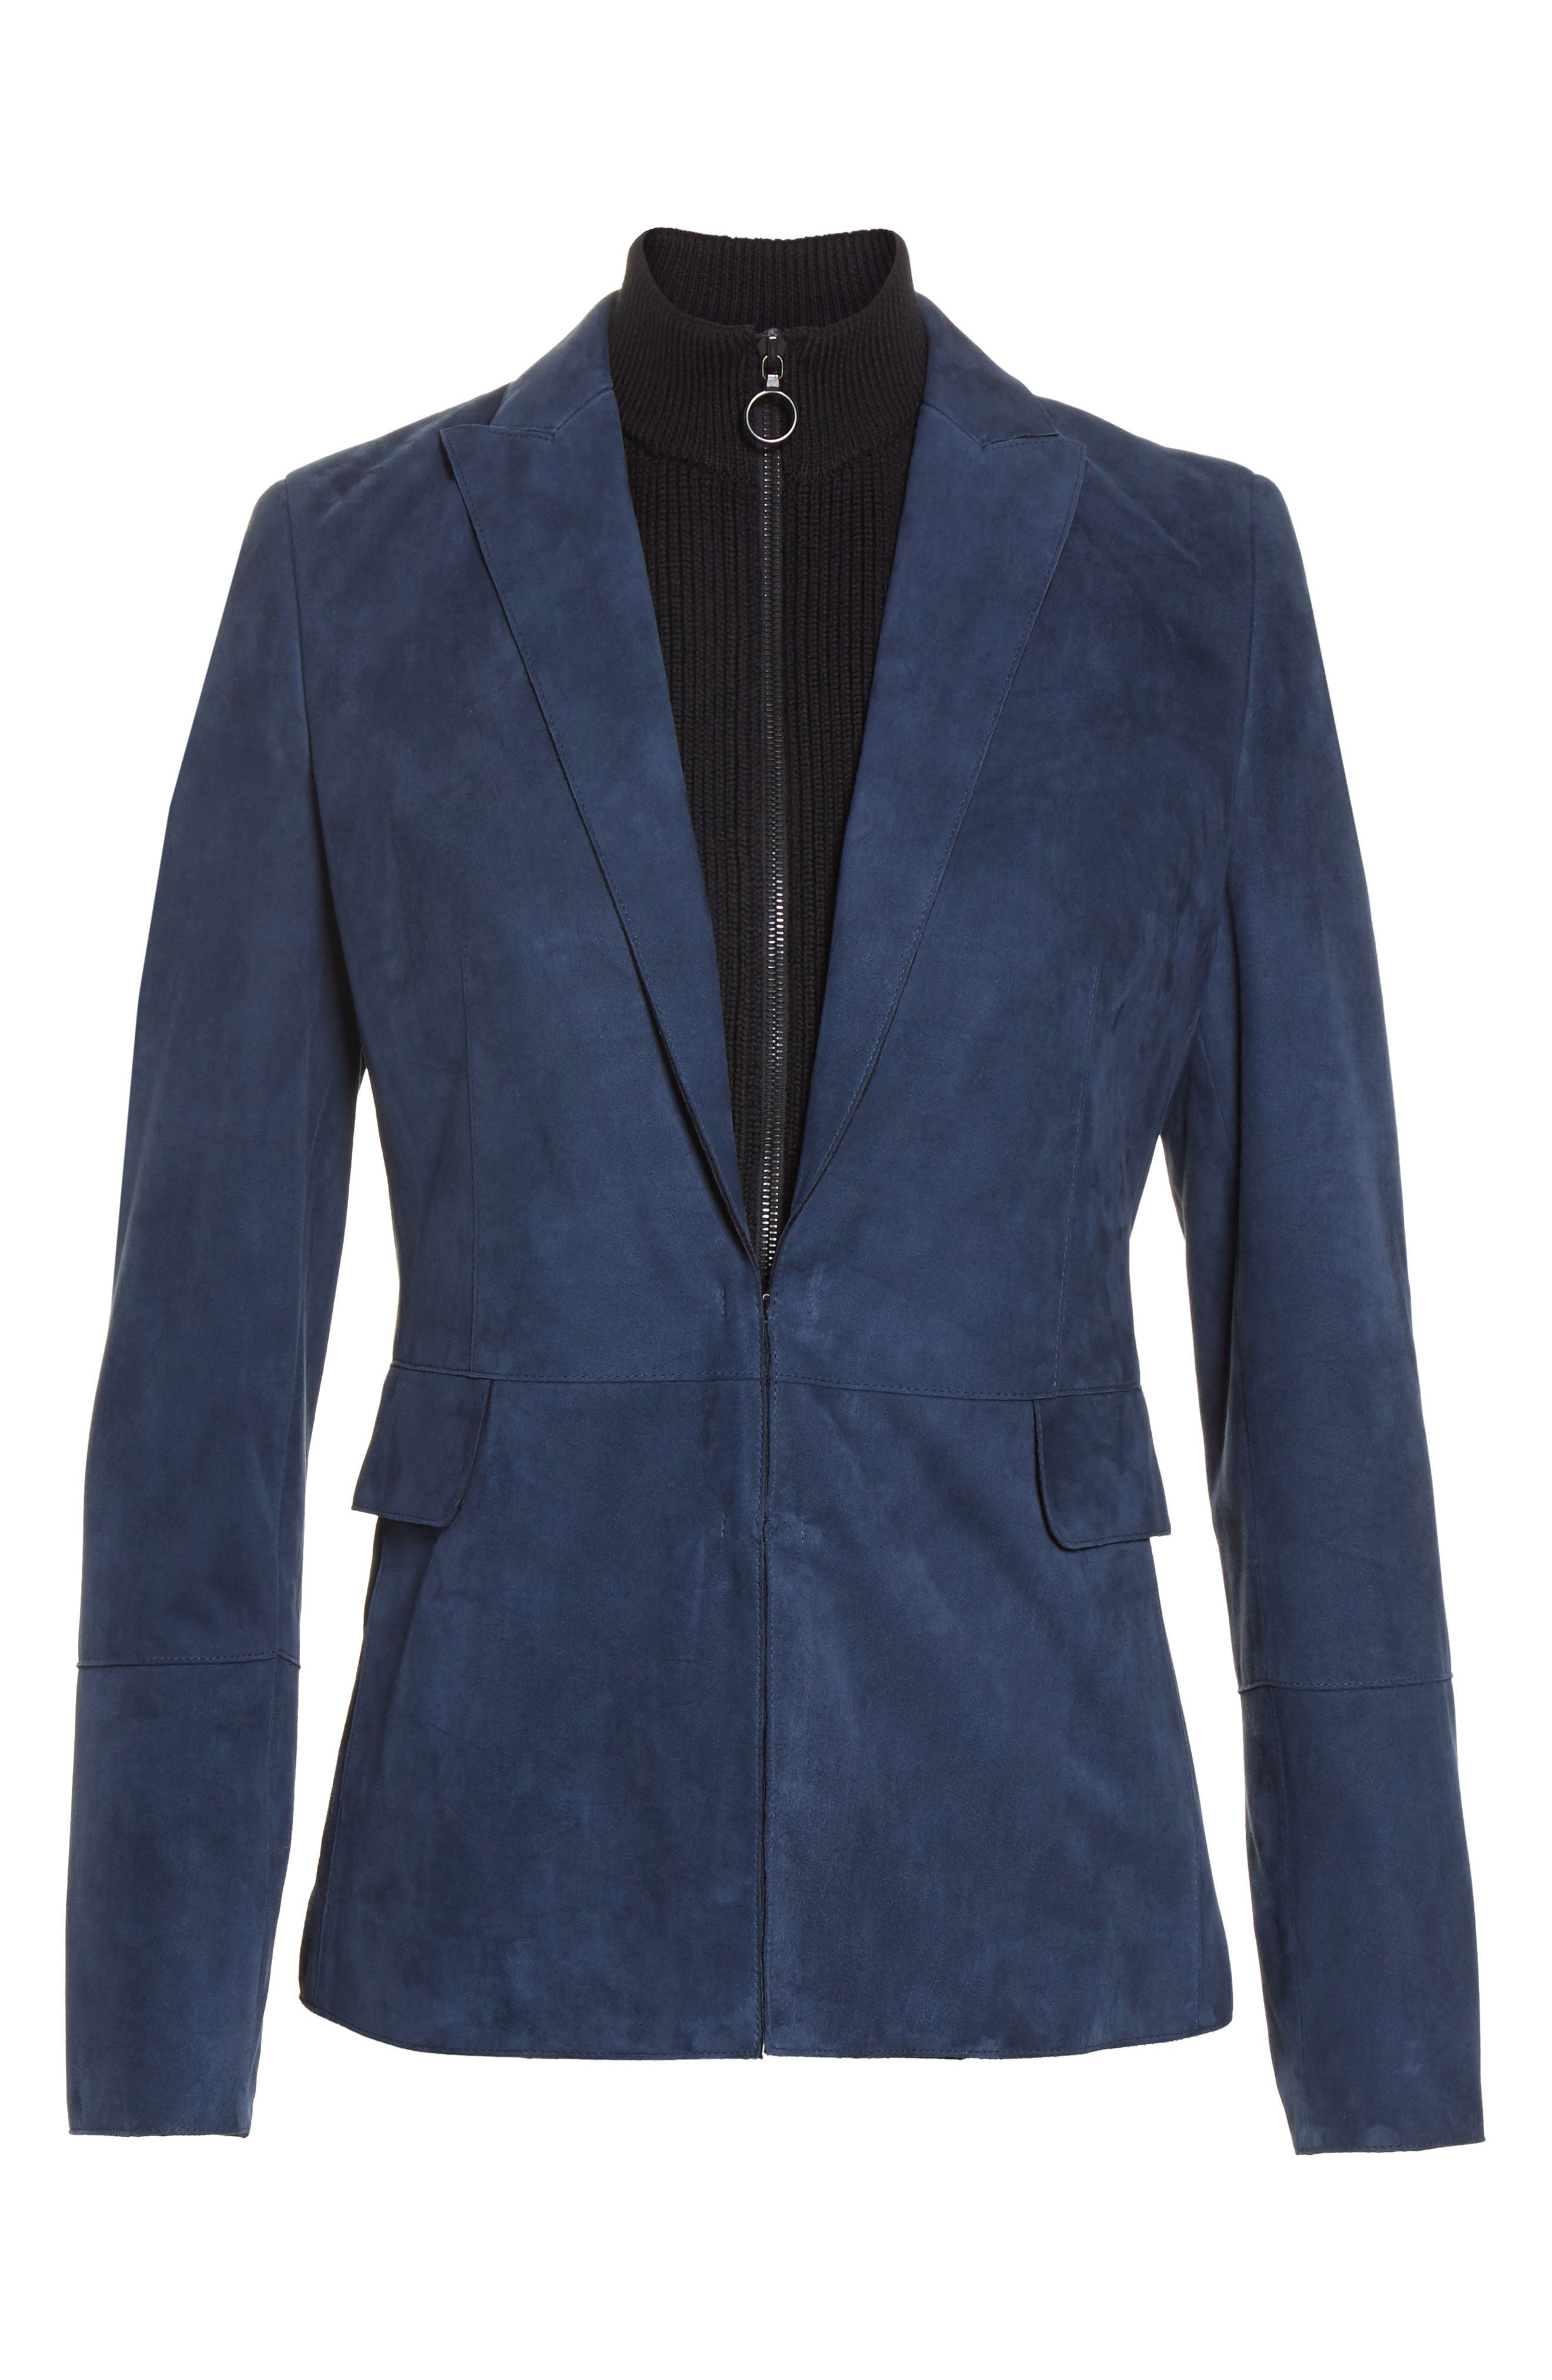 Suede Blazer with Removable Knit Insert,                             Alternate thumbnail 3, color,                             400